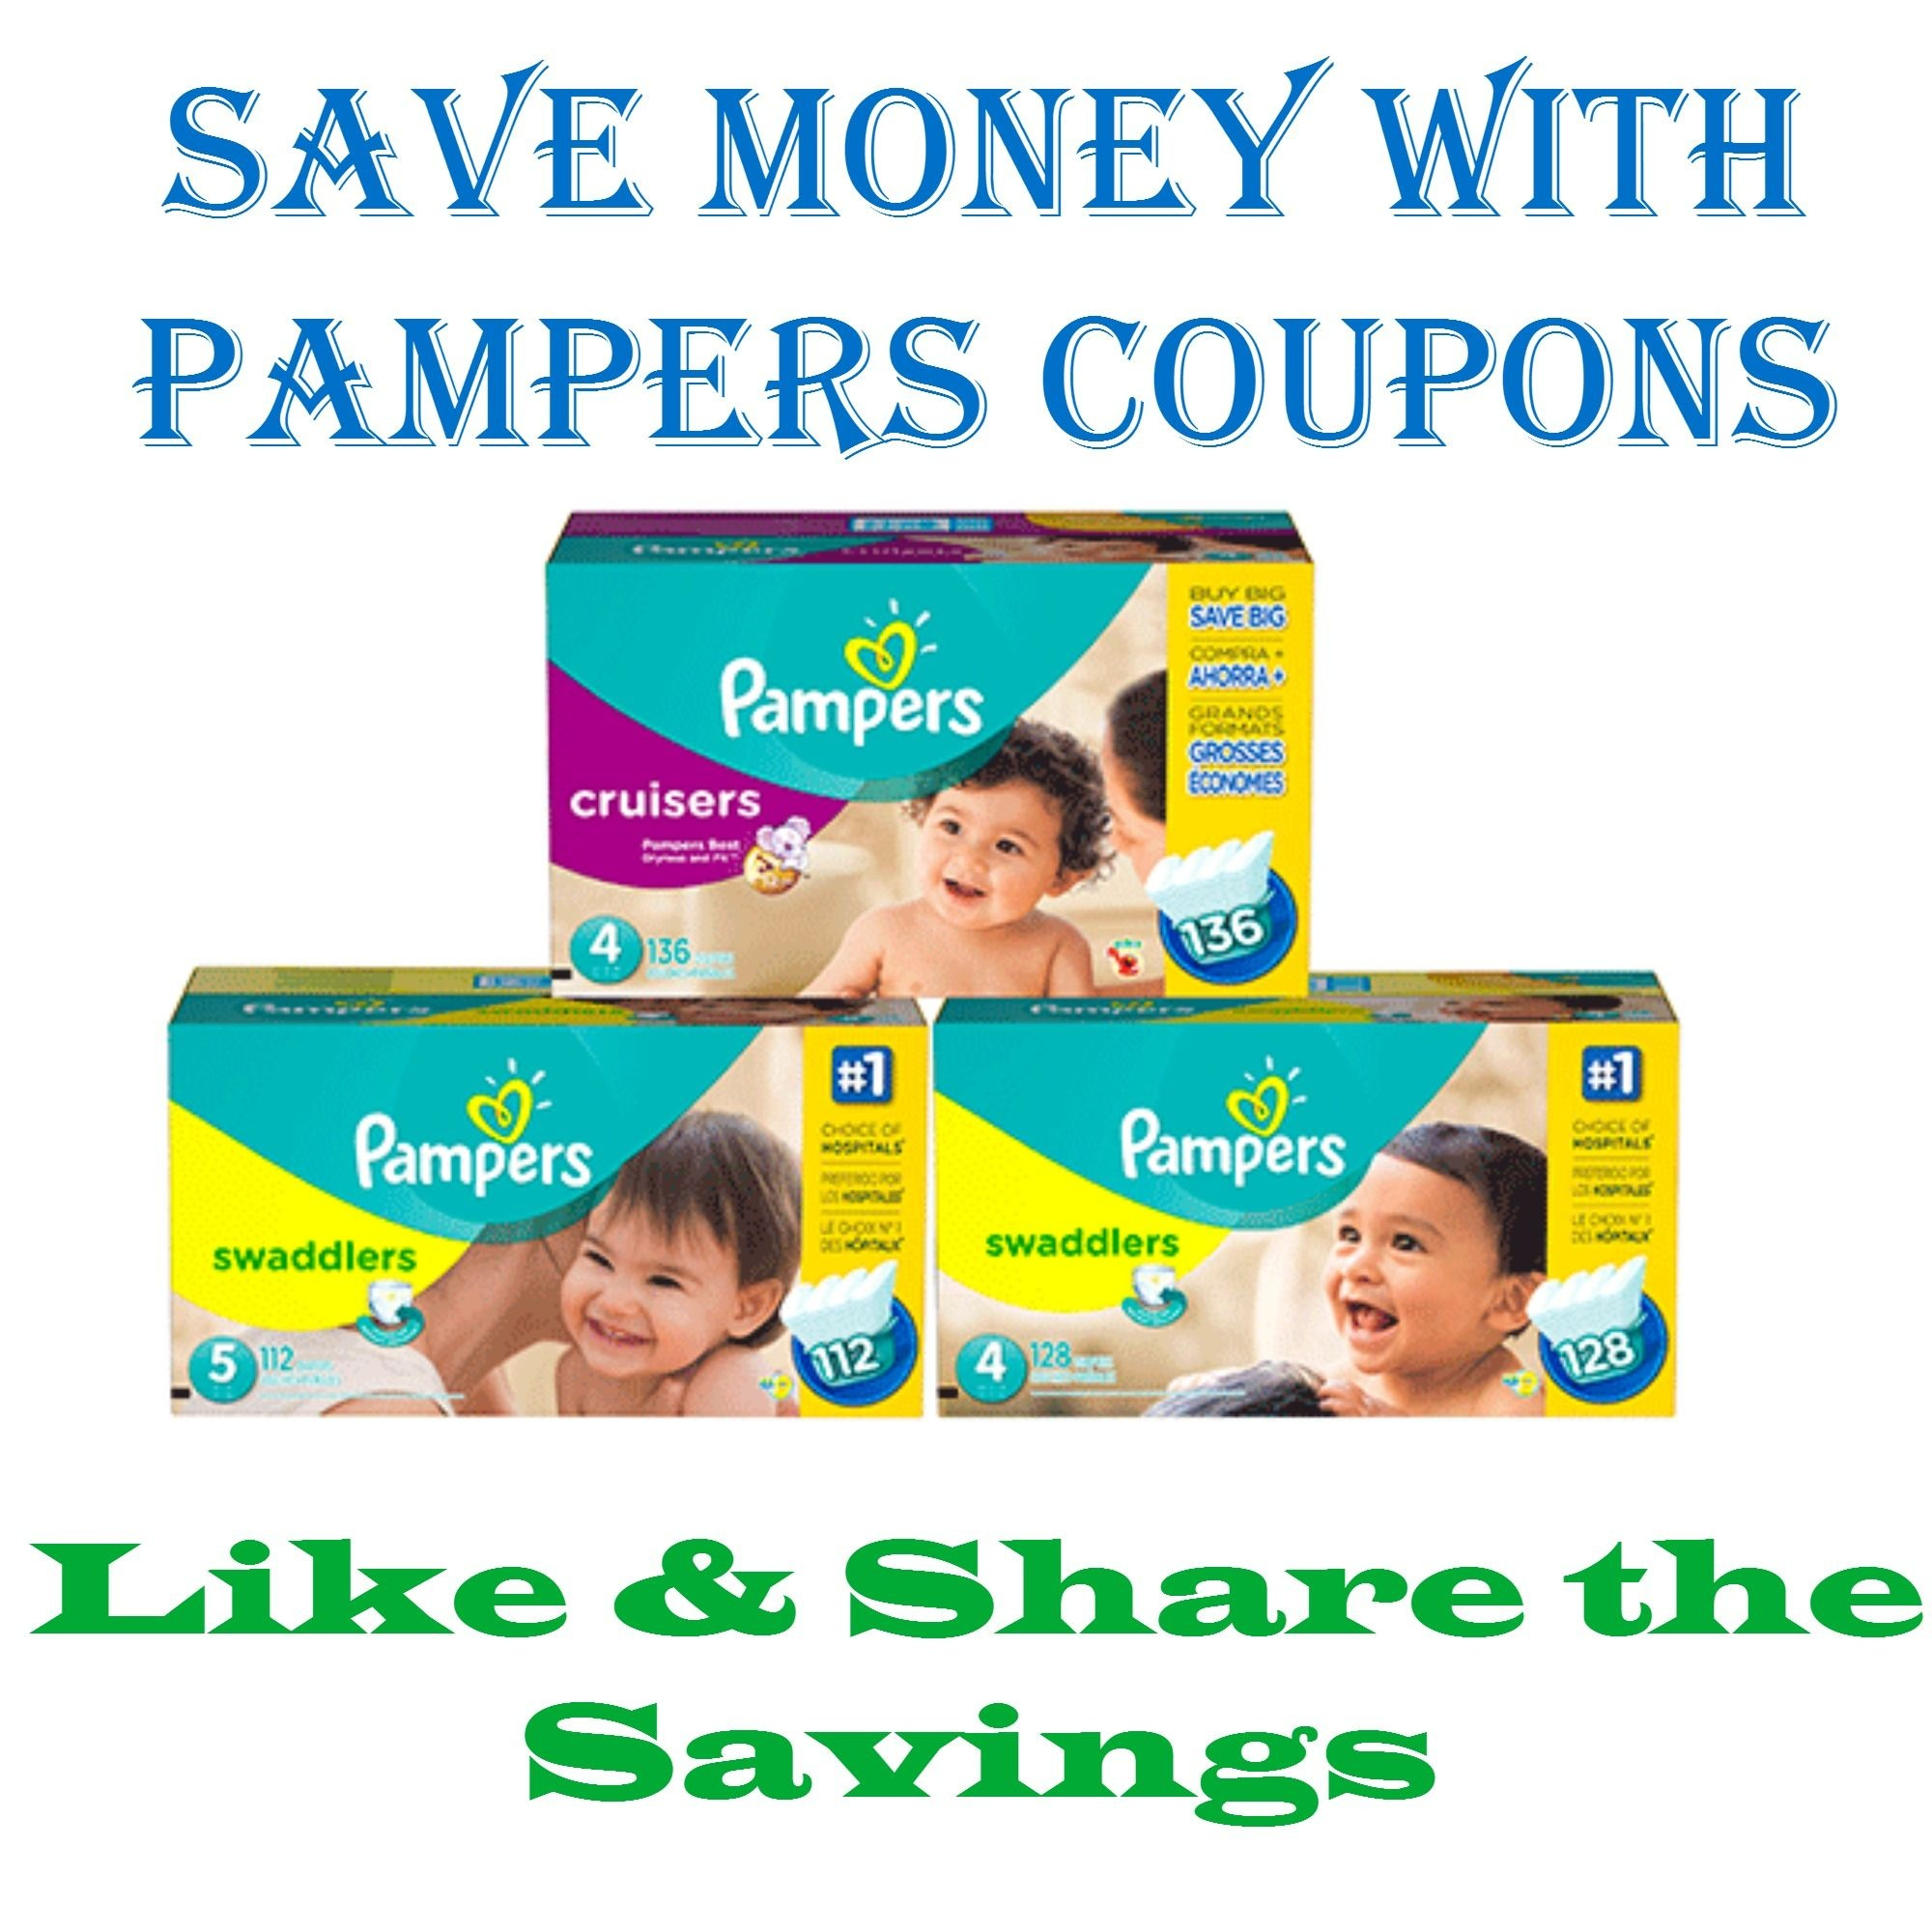 Pampers Coupons For Canada (Printable) | Projects To Try | Newborn - Free Printable Coupons For Baby Diapers